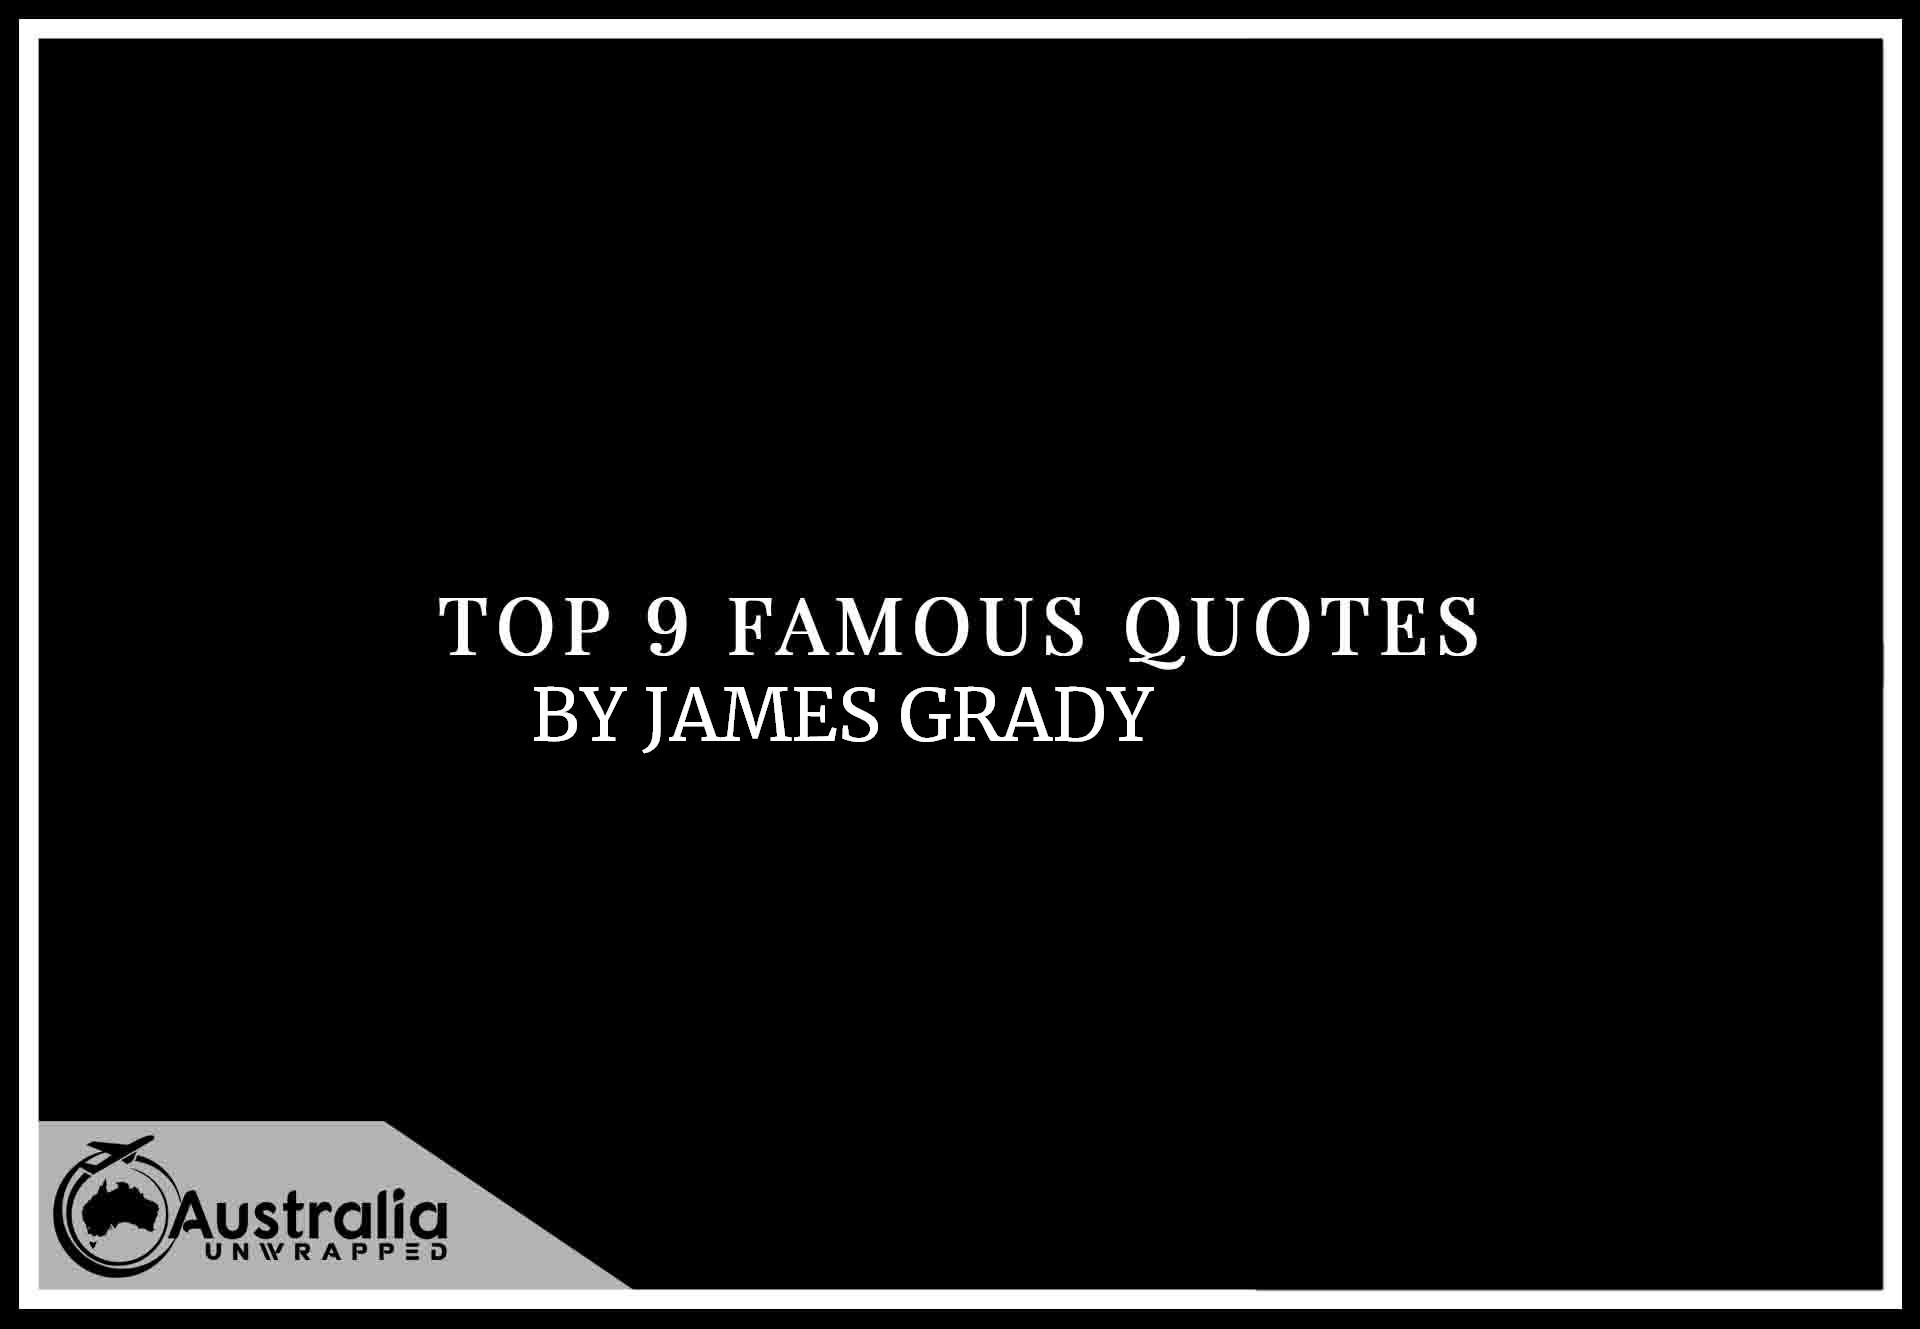 Top 9 Famous Quotes by Author James Grady